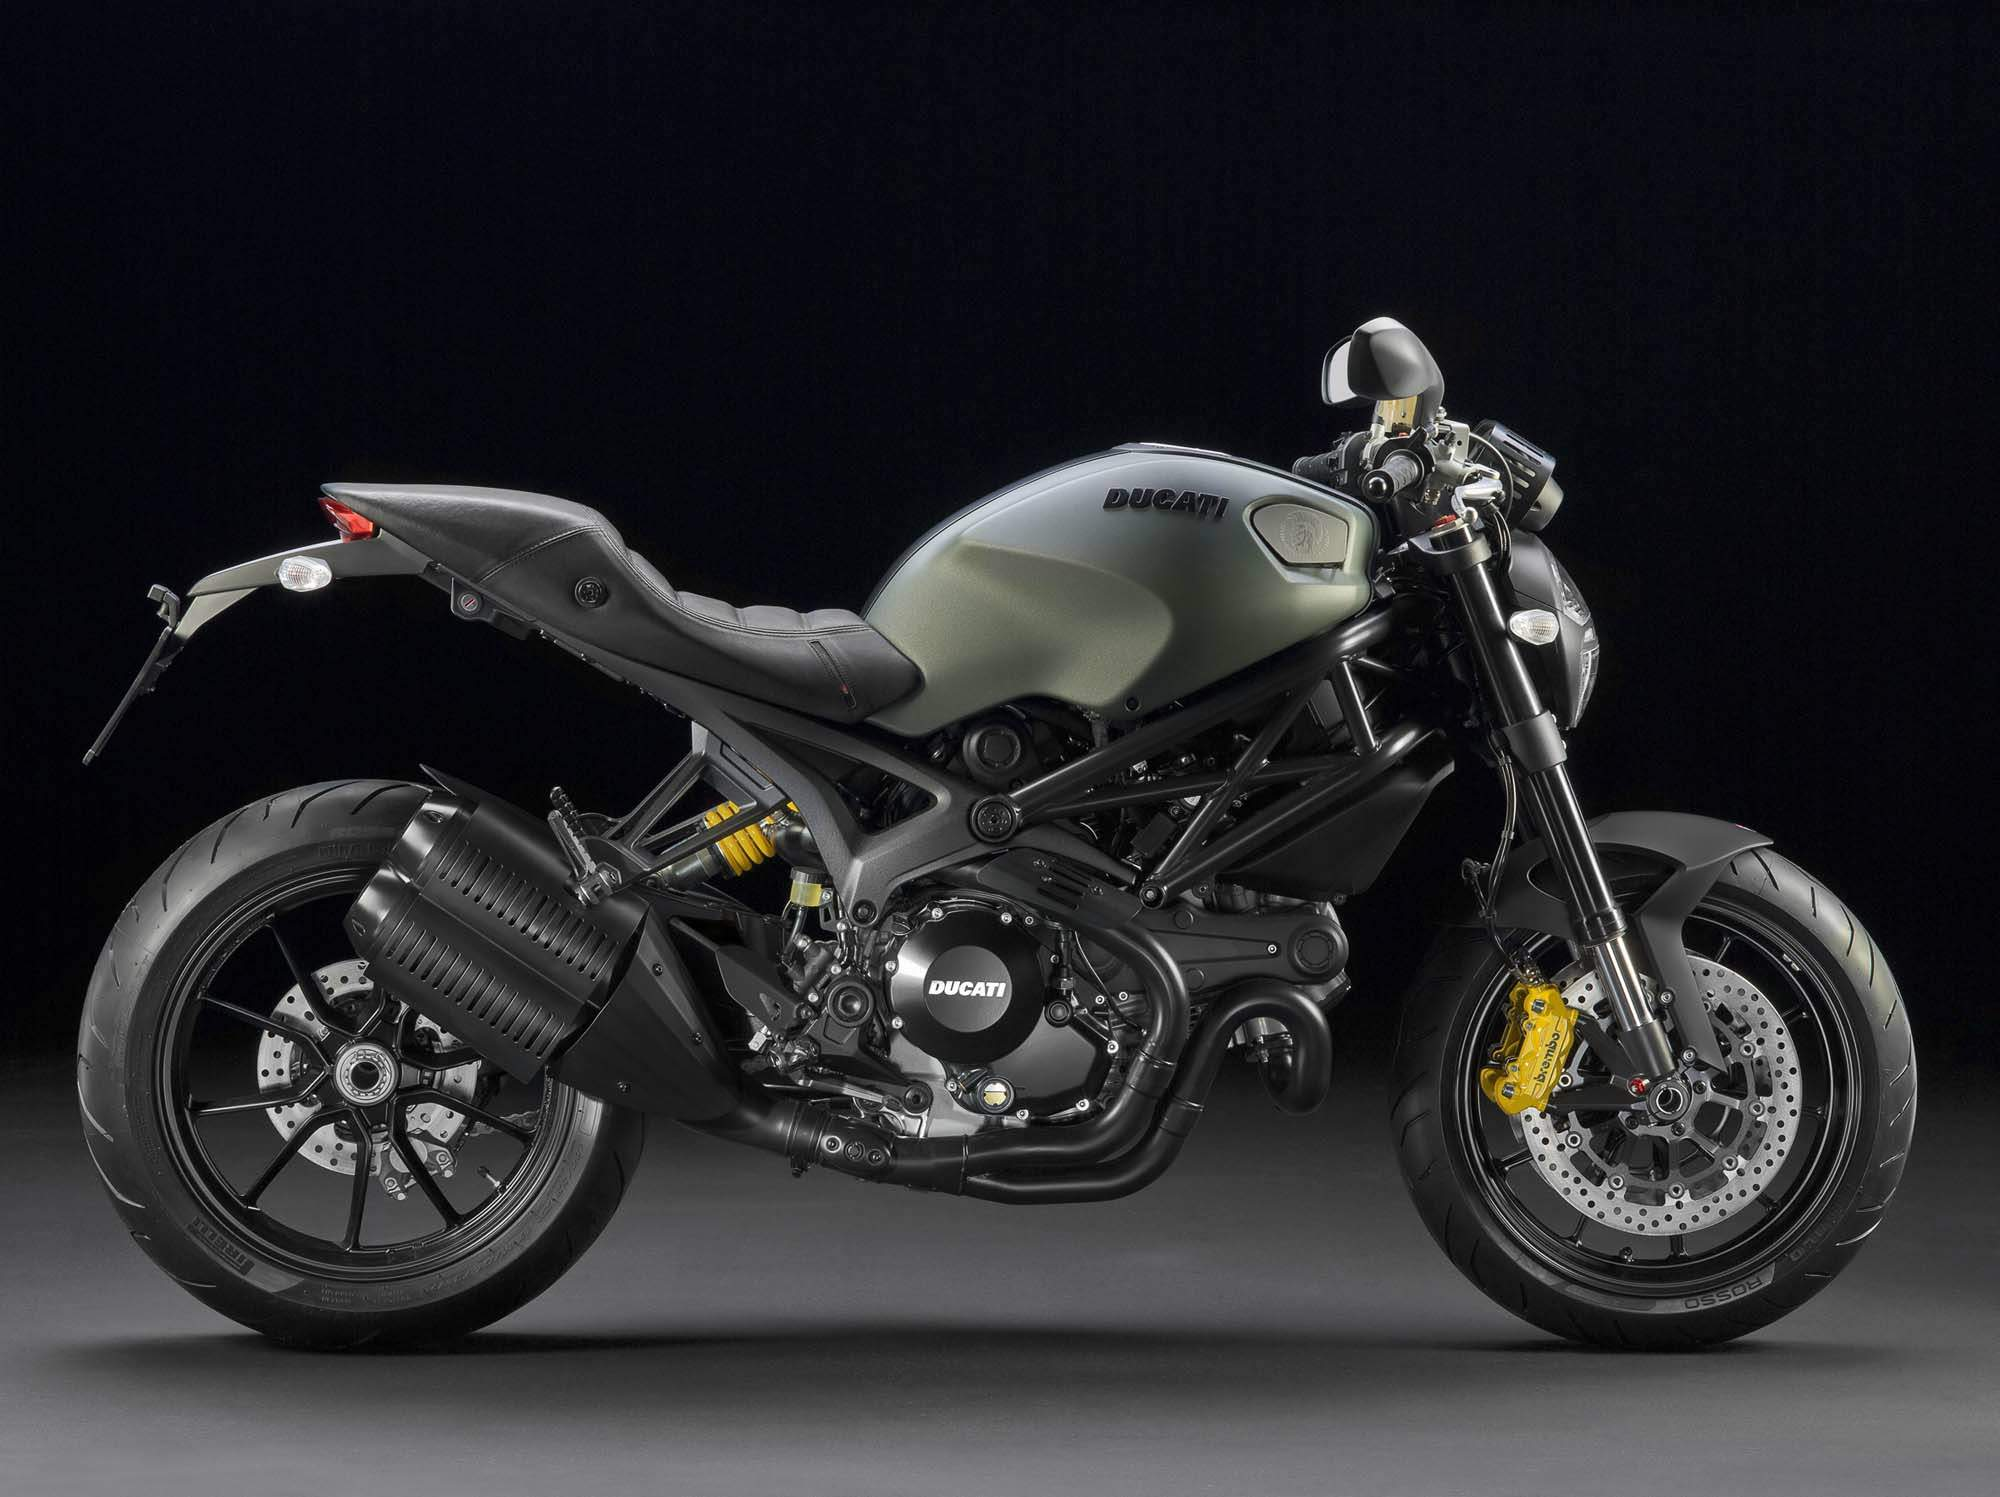 ducati monster 1100 diesel special edition